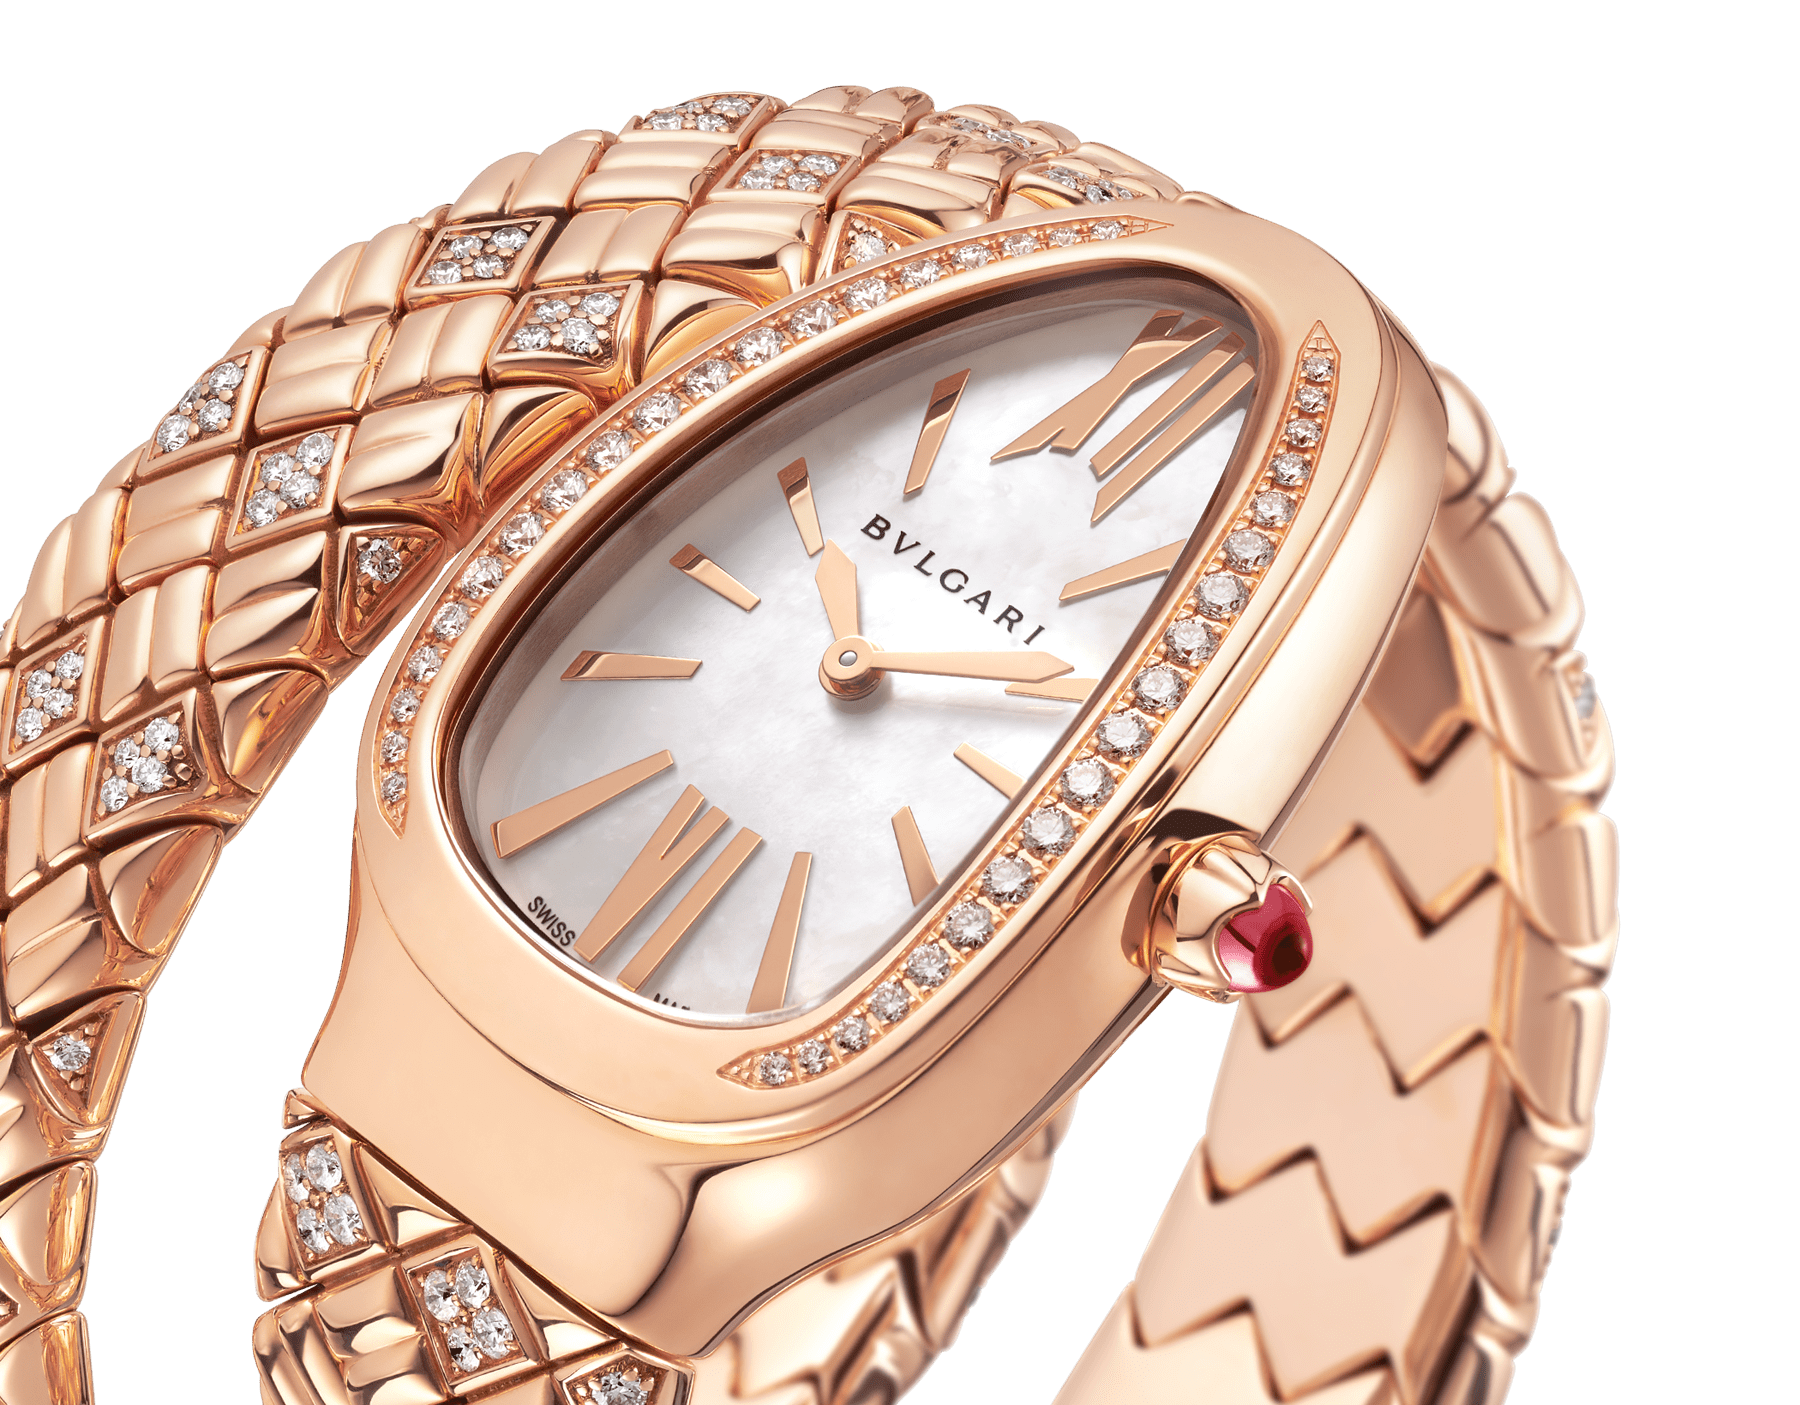 Serpenti Spiga single-spiral watch with 18 kt rose gold case and bracelet set with diamonds, and white mother-of-pearl dial 103250 image 3